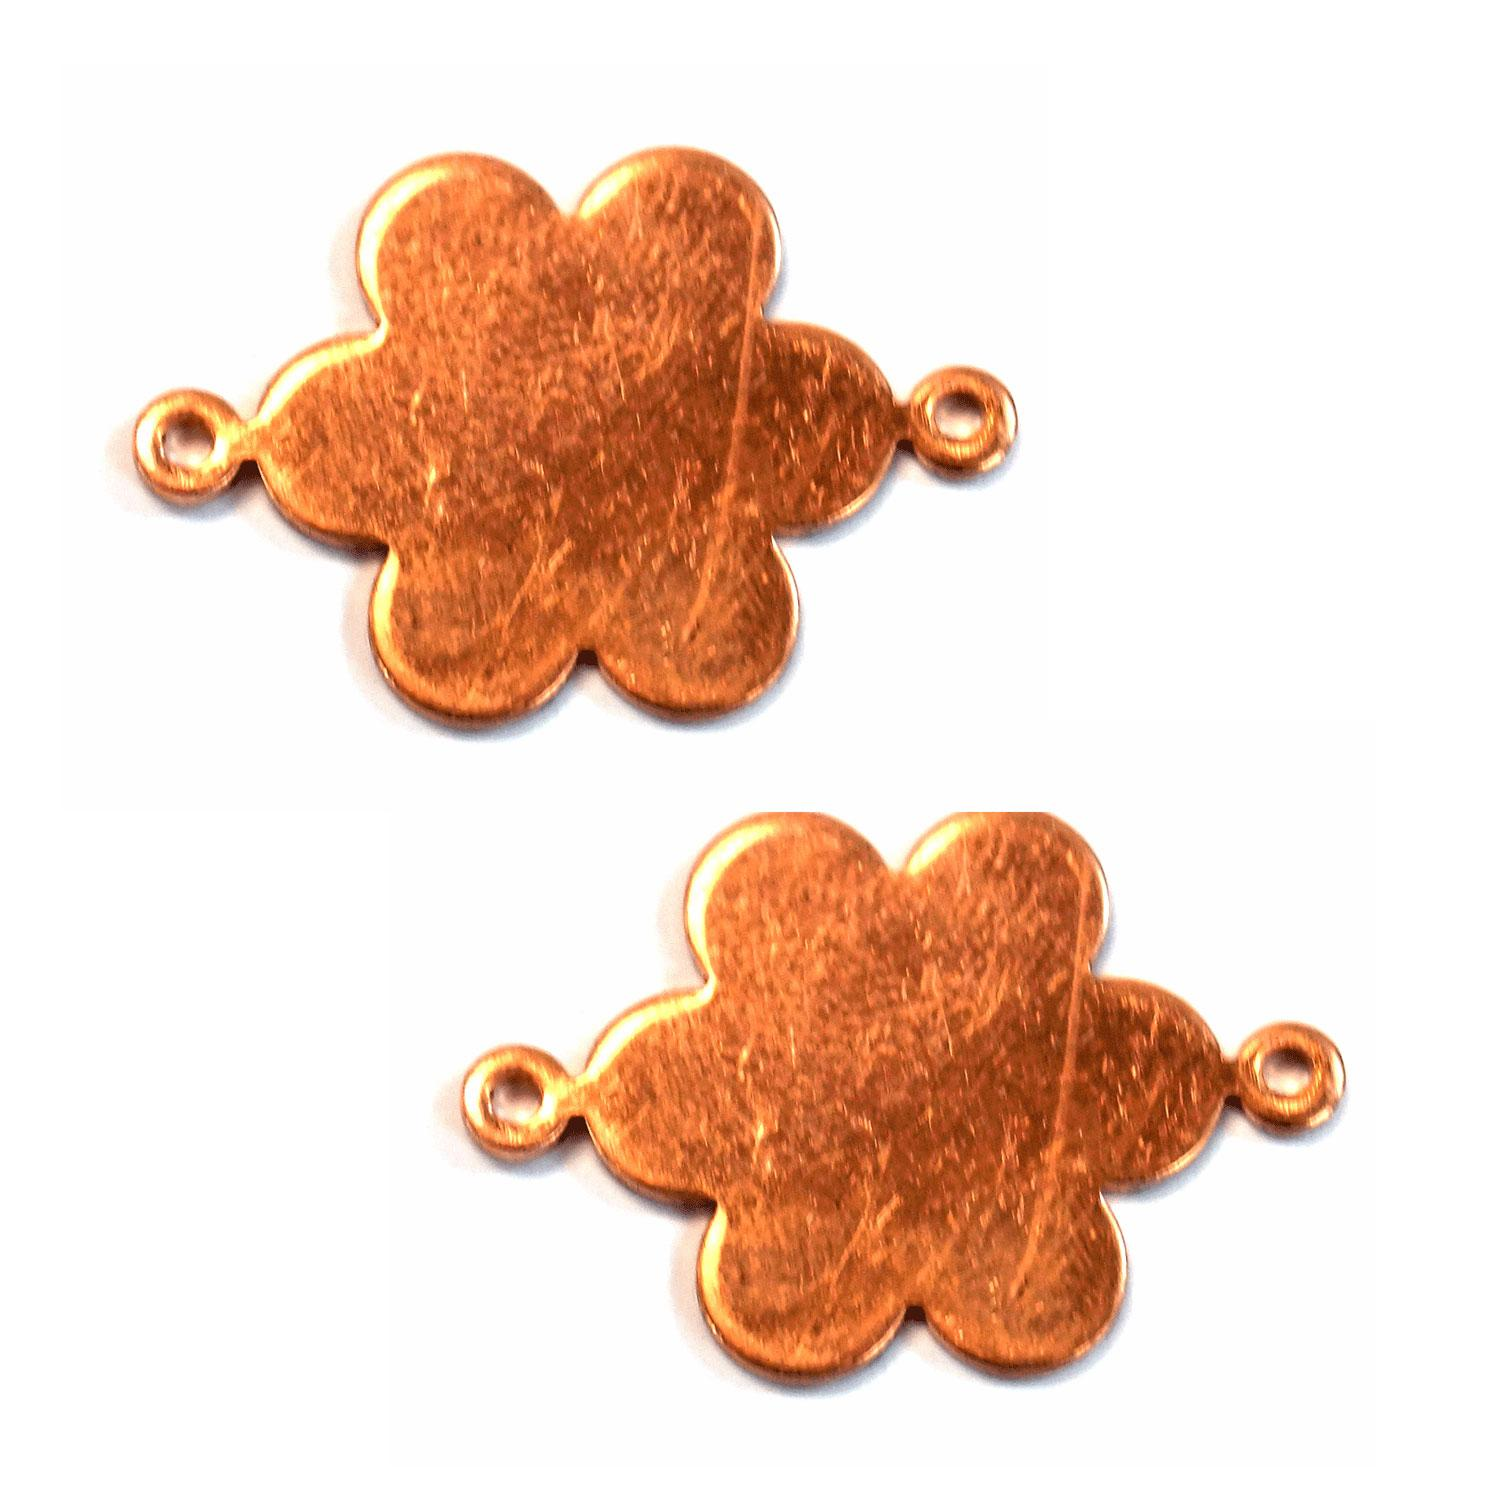 Medium Daisy Copper Shape with Tabs - 2 Pack